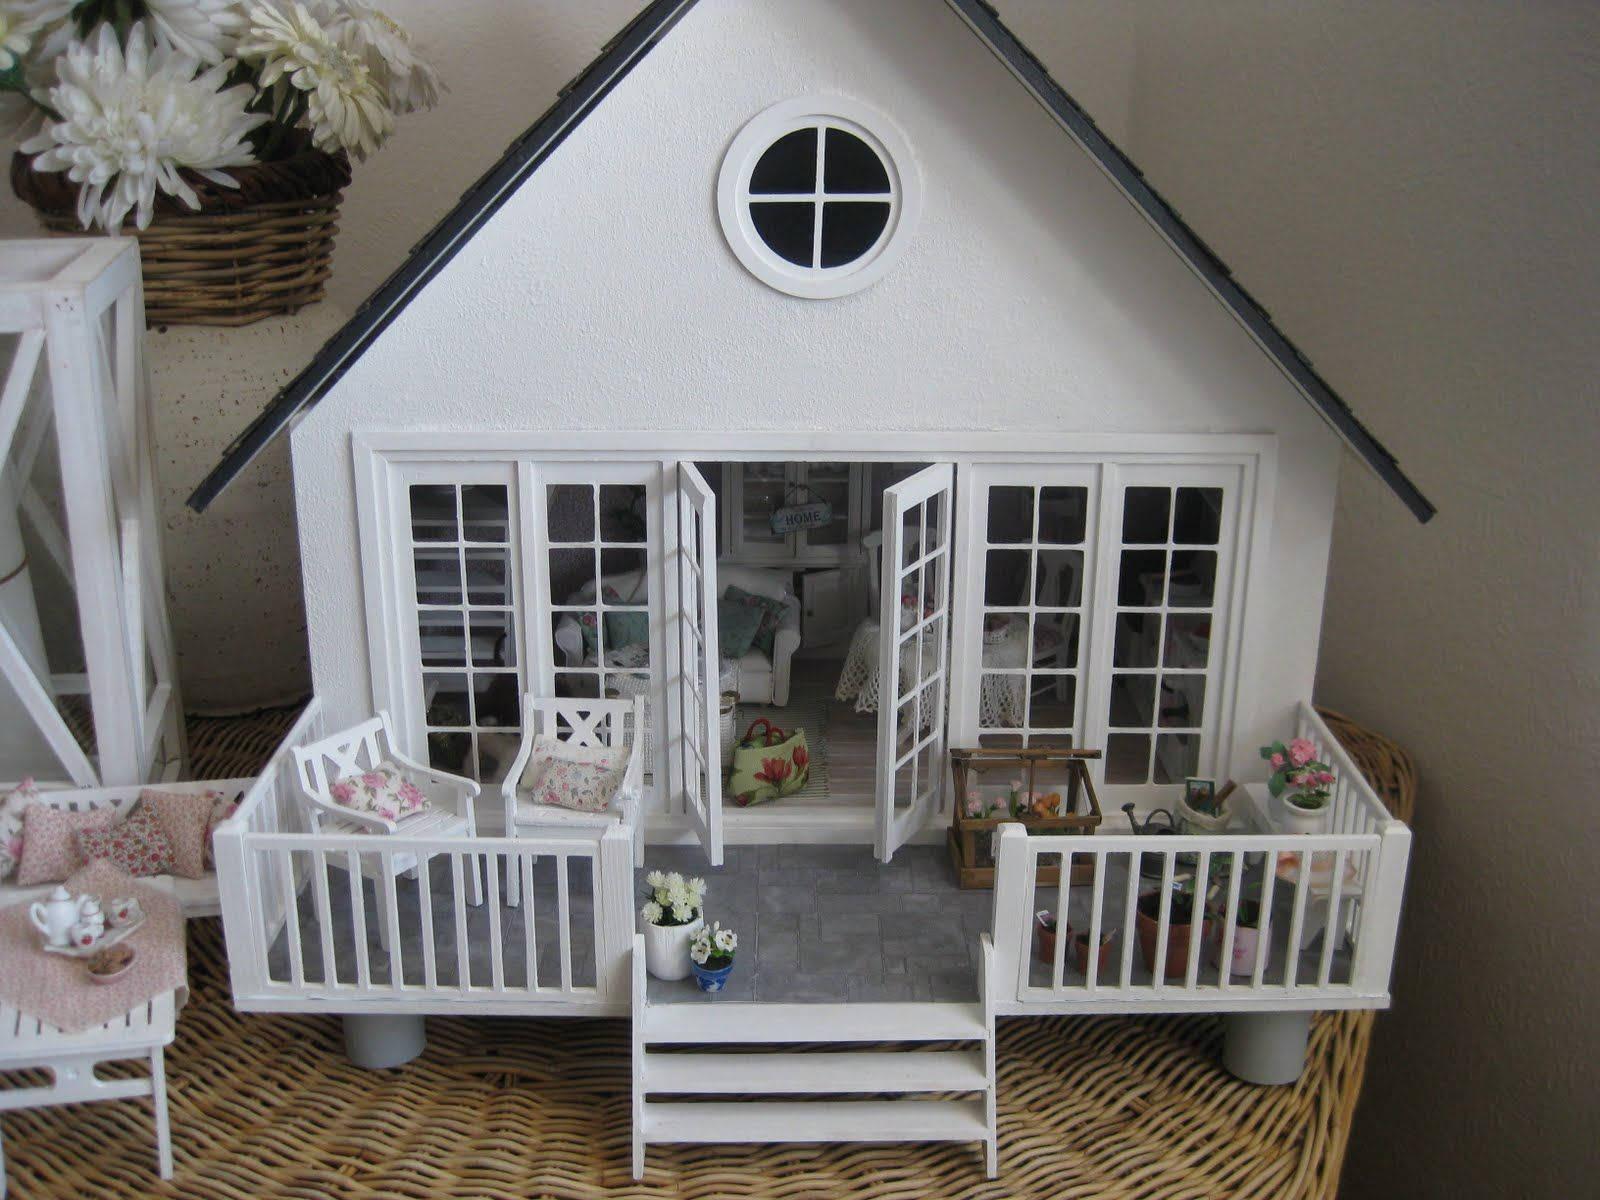 youtube houses watch cottages cottage scale miniature dollhouse